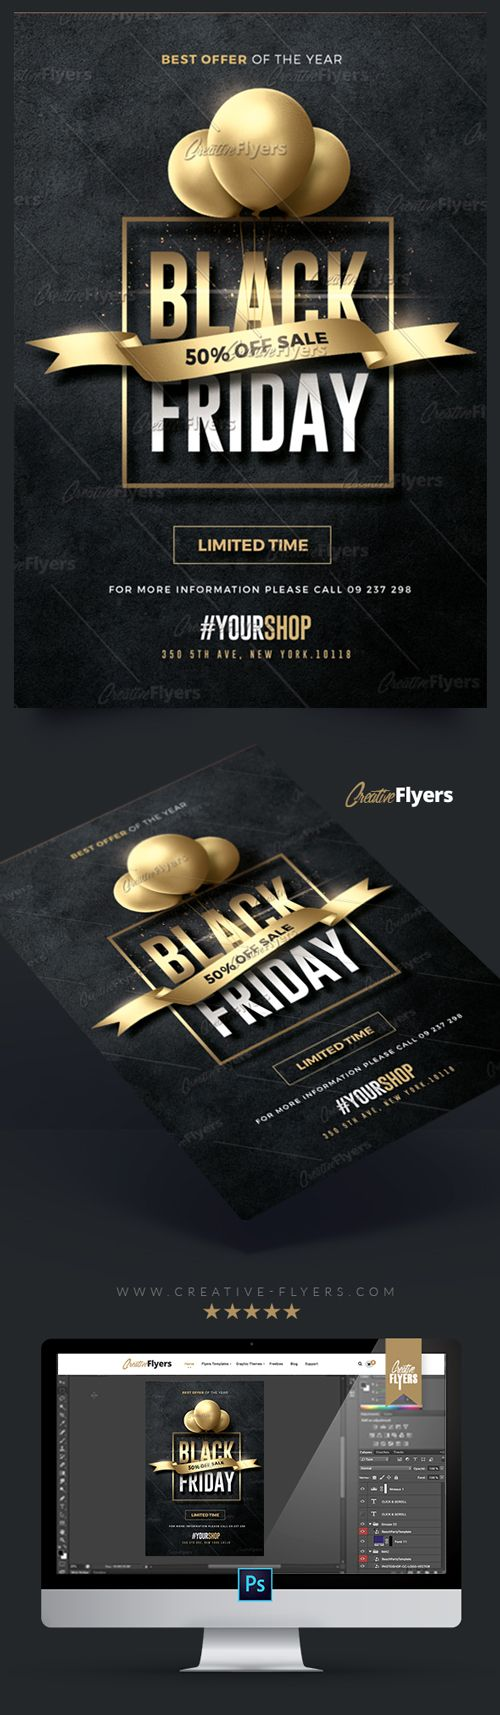 Creative Black Friday Flyer Enjoy downloading the Premium Photoshop PSD Flyer / poster Template designed by Creative Flyers perfect to promote your Black Friday ! #black #friday #blackfriday #flyers #templates #cards #graphics #creative #creativeflyers